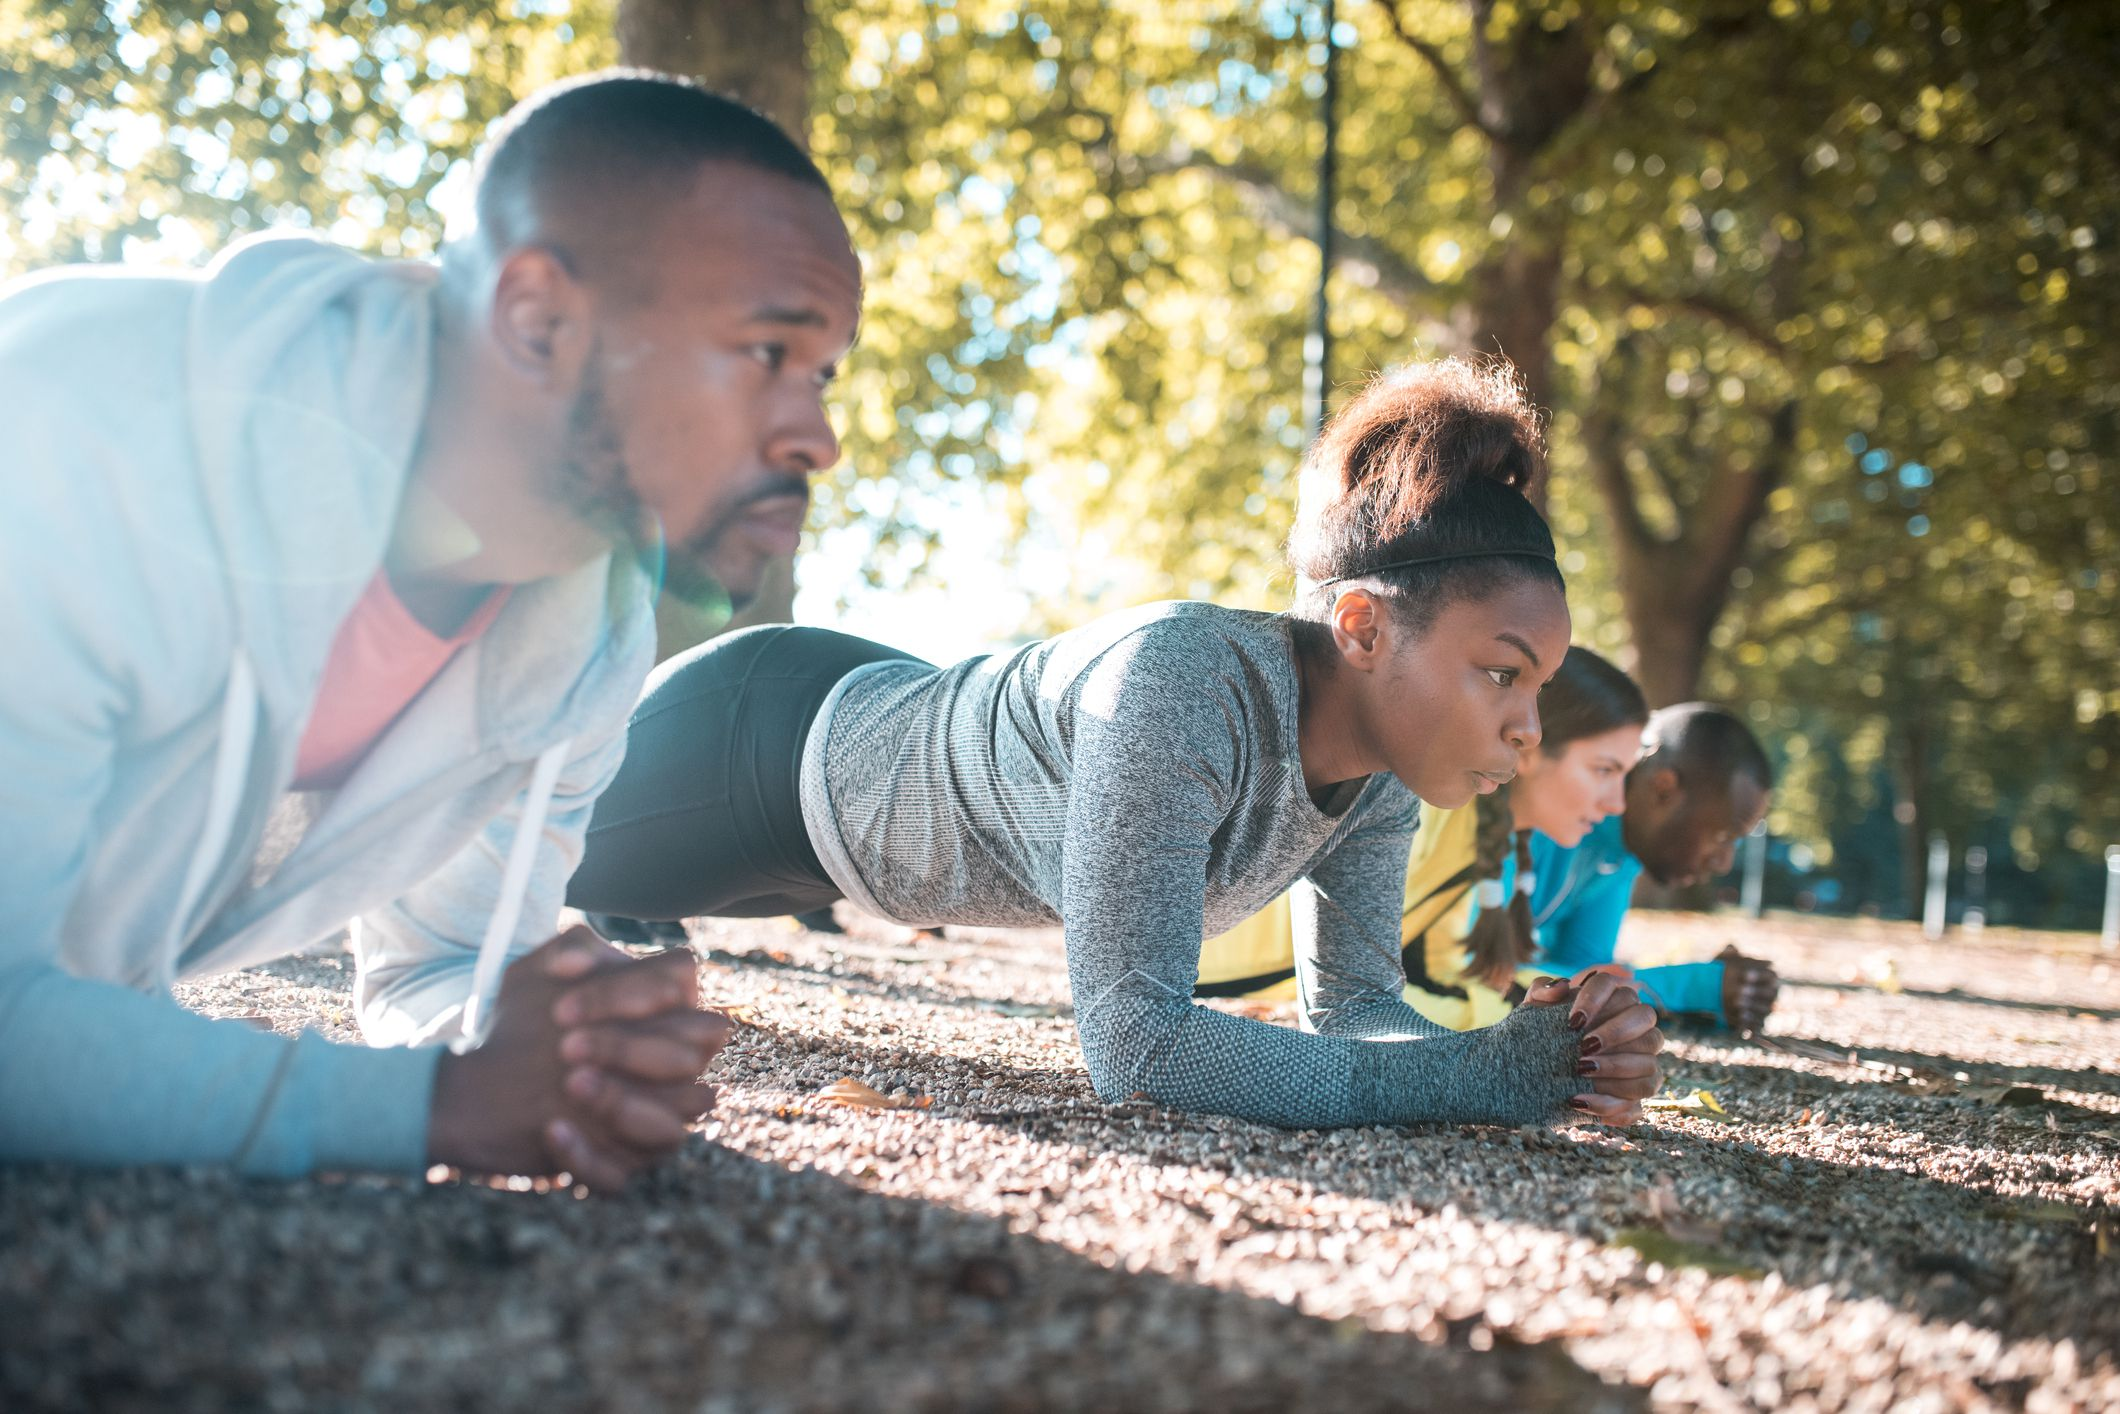 5 Components Of Fitness In A Healthy Exercise Routine